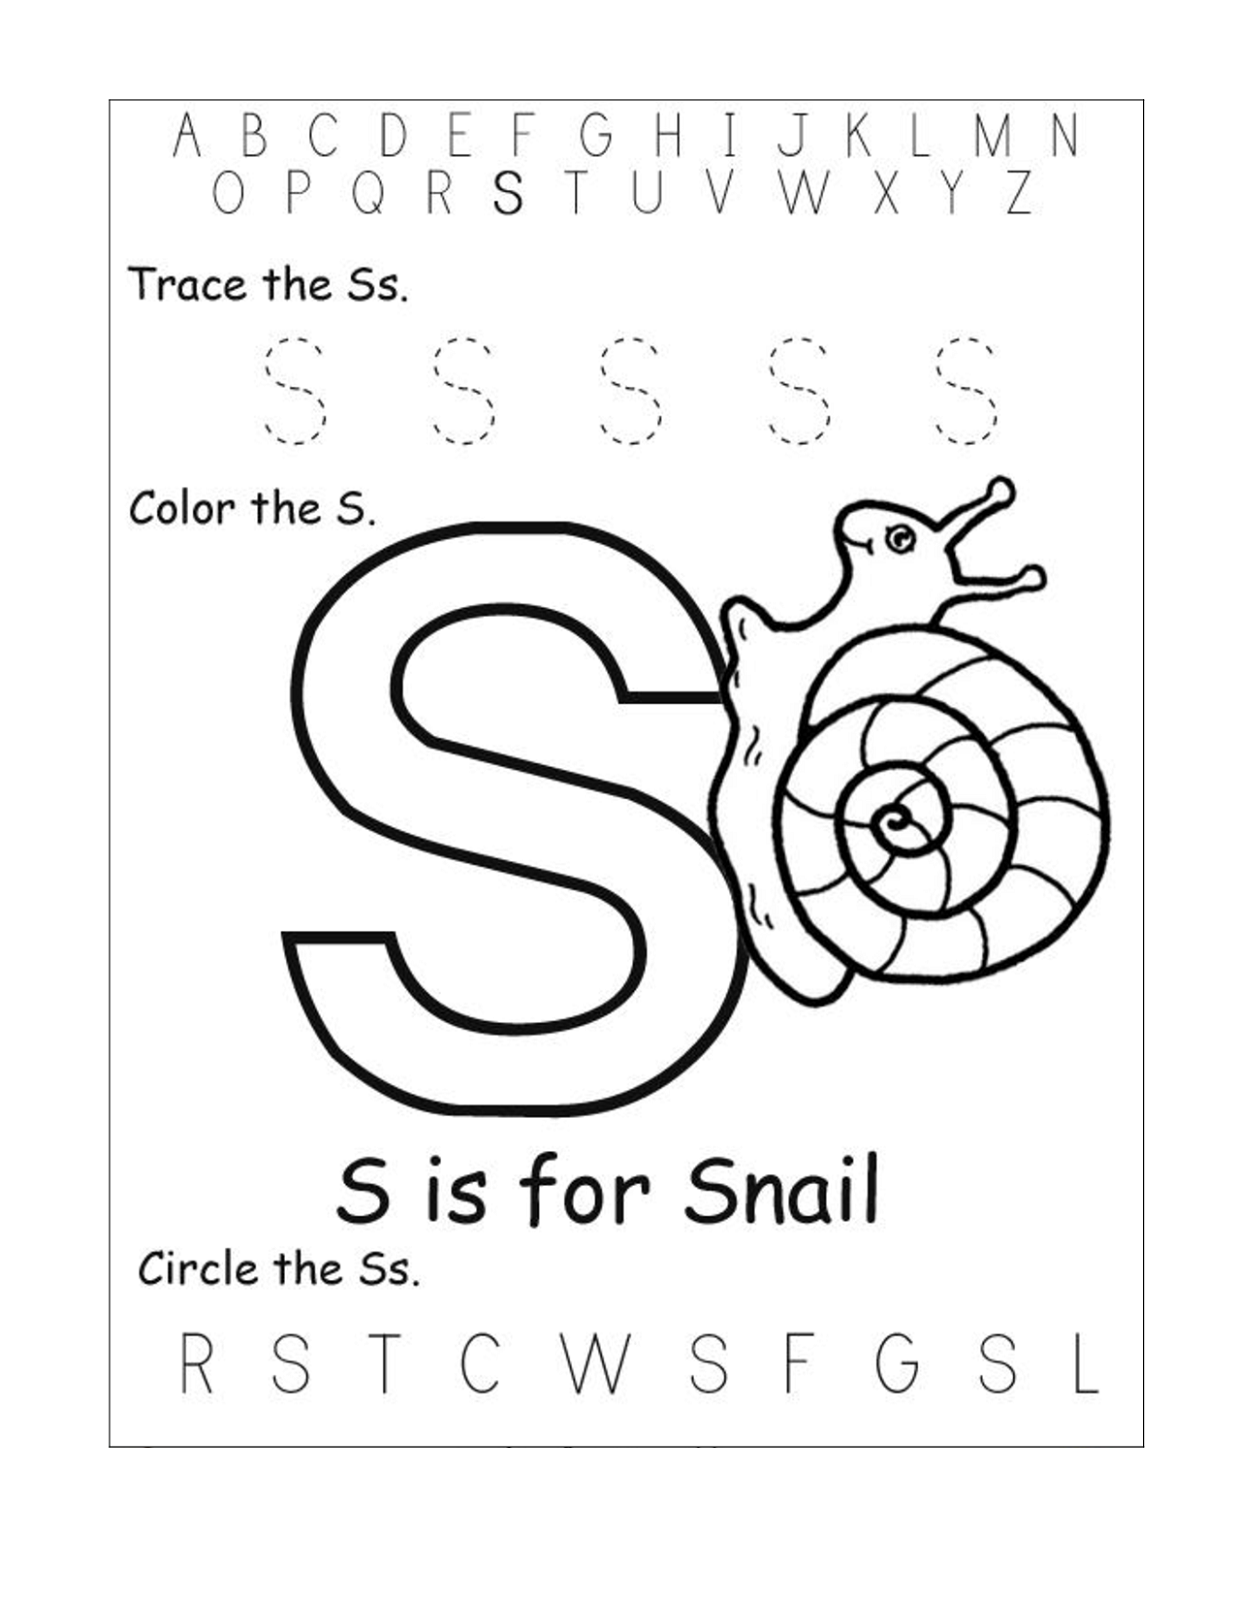 Free Printable Pre K Math Worksheets : Pre k drawing worksheets at getdrawings free for